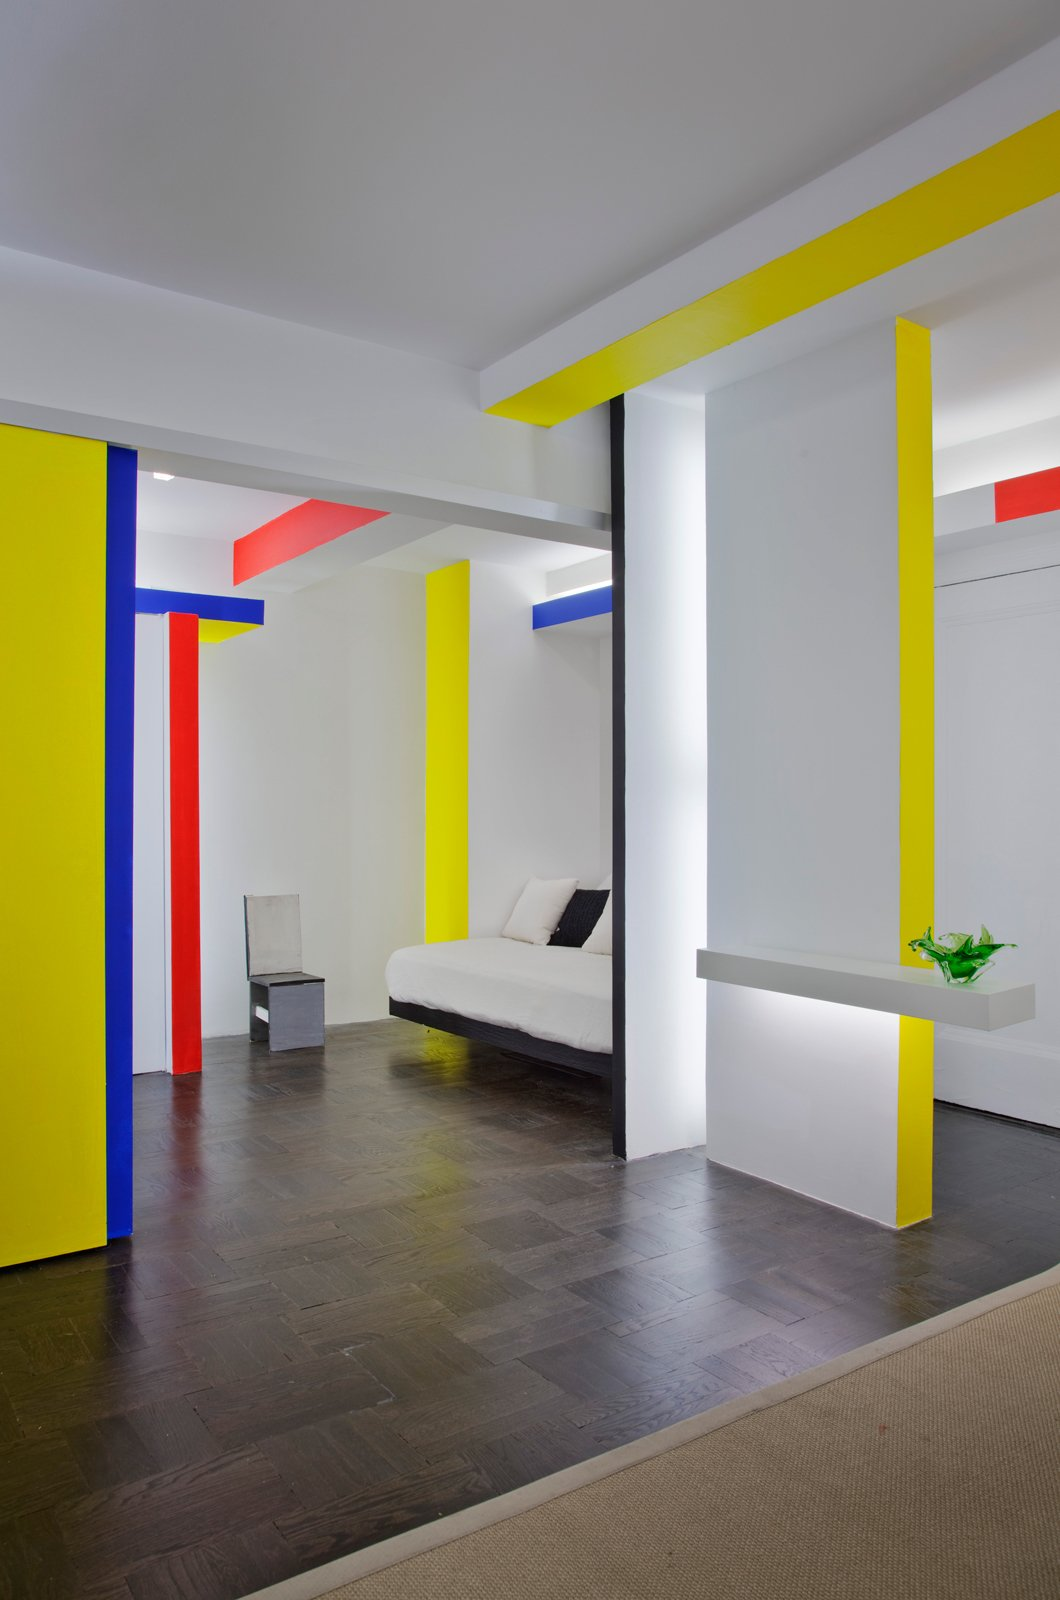 Taking cues from Piet Mondrian's iconic Broadway Boogie Woogie painting, architect and critic Joseph Giovannini recasts a New York City studio apartment.  Photo 17 of 25 in 25 Bold Ways to Decorate with Yellow from Primary Colors in Home Design